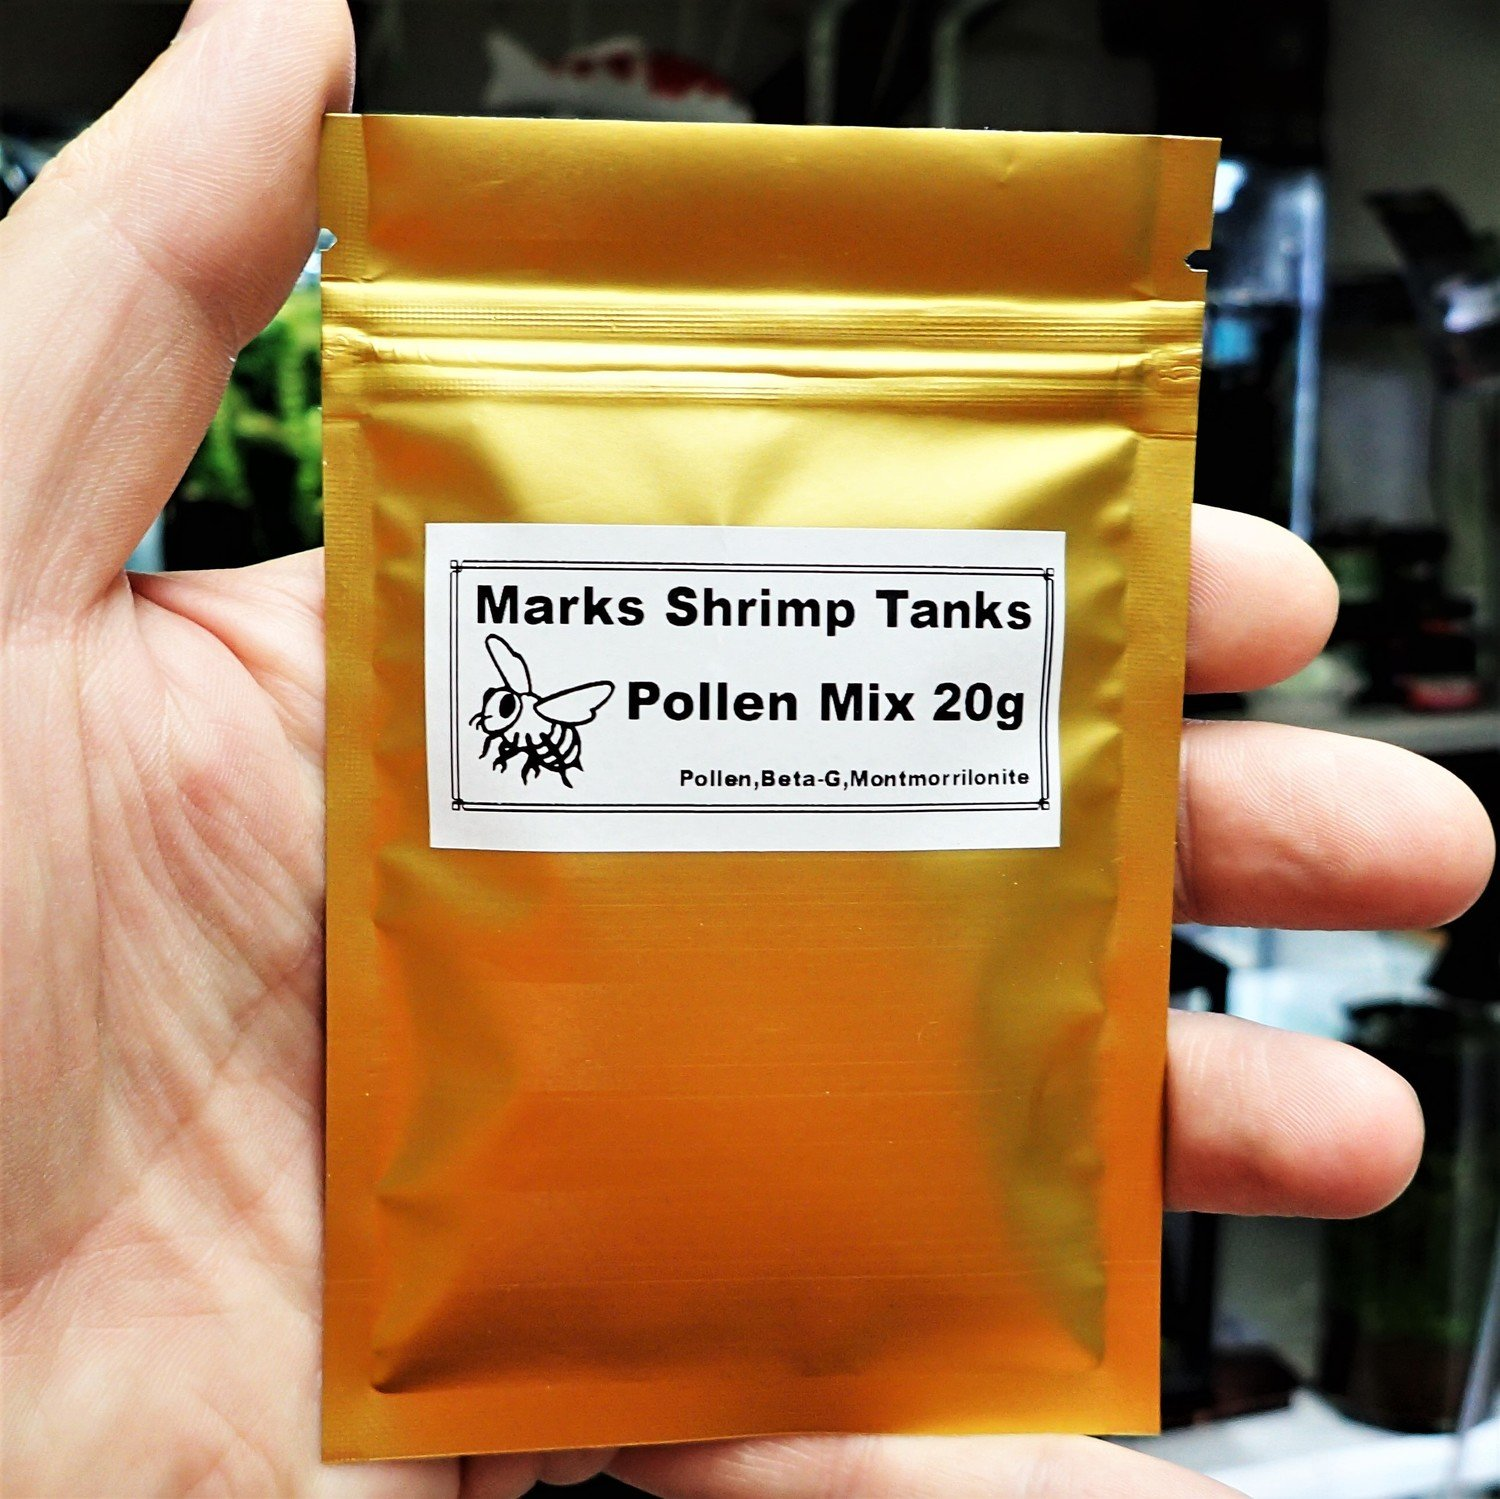 PollenMix Shrimp Food 40g bigger packet from 2019